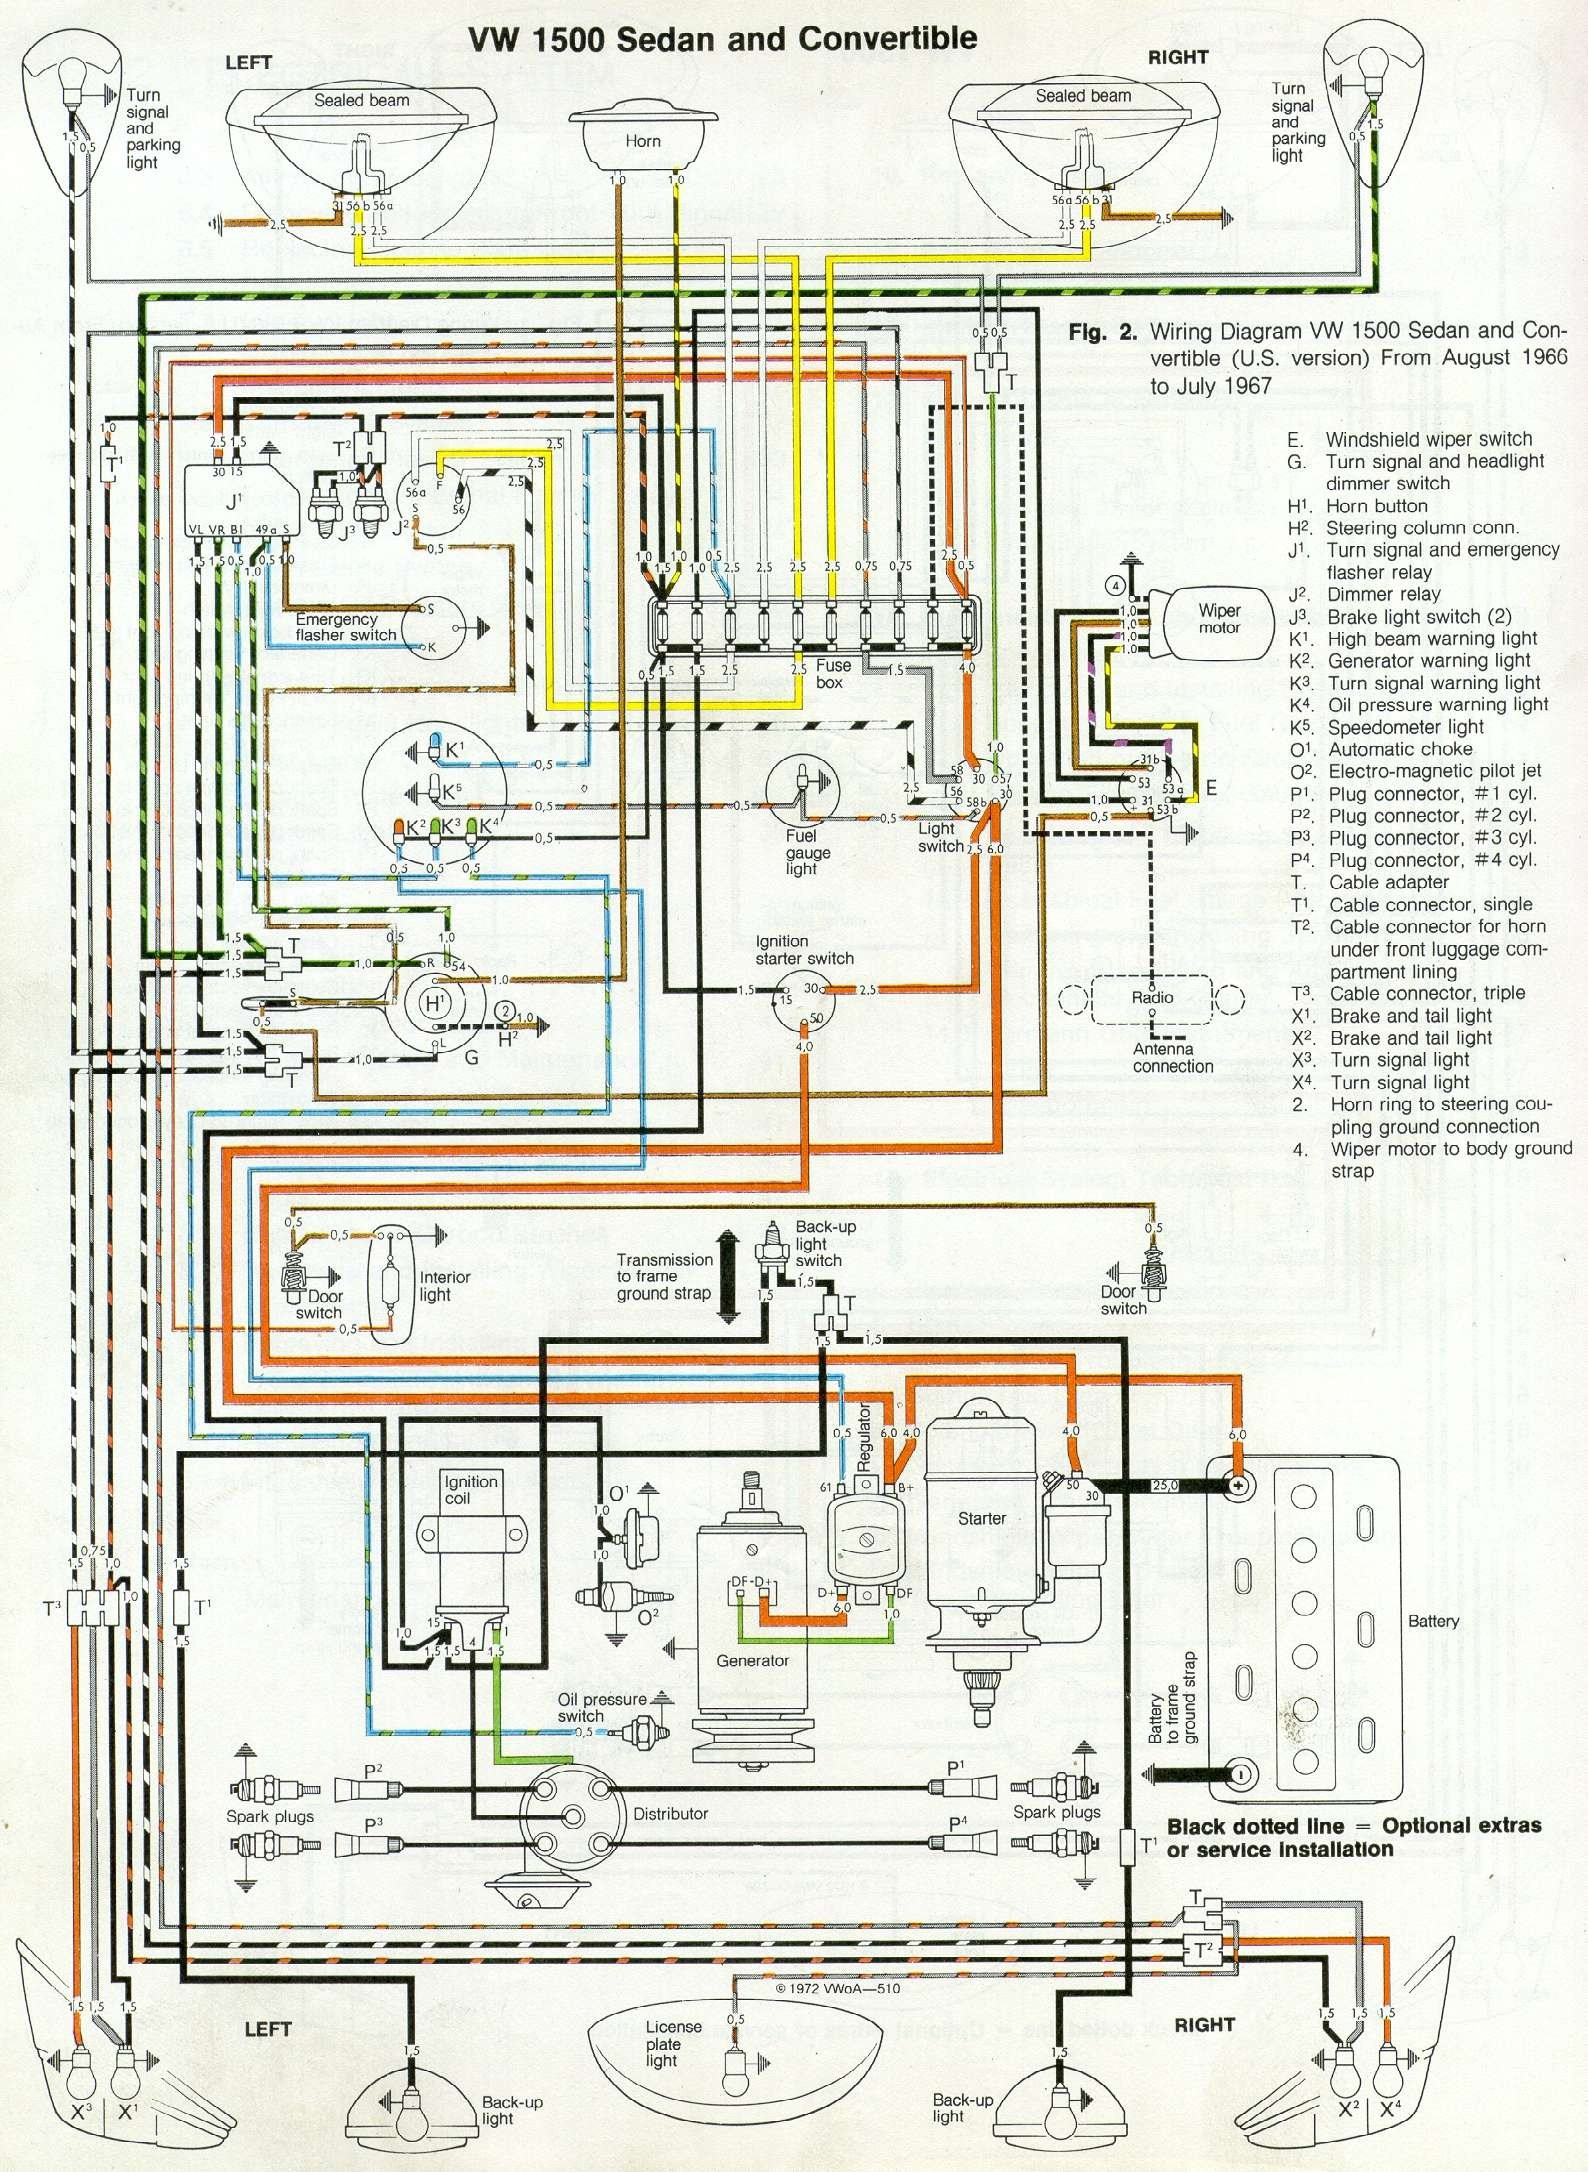 VW Beetle Wiring Digram 67 beetle wiring diagram u s version 1967 vw beetle beetle wiring diagram to fix a/c fan at readyjetset.co